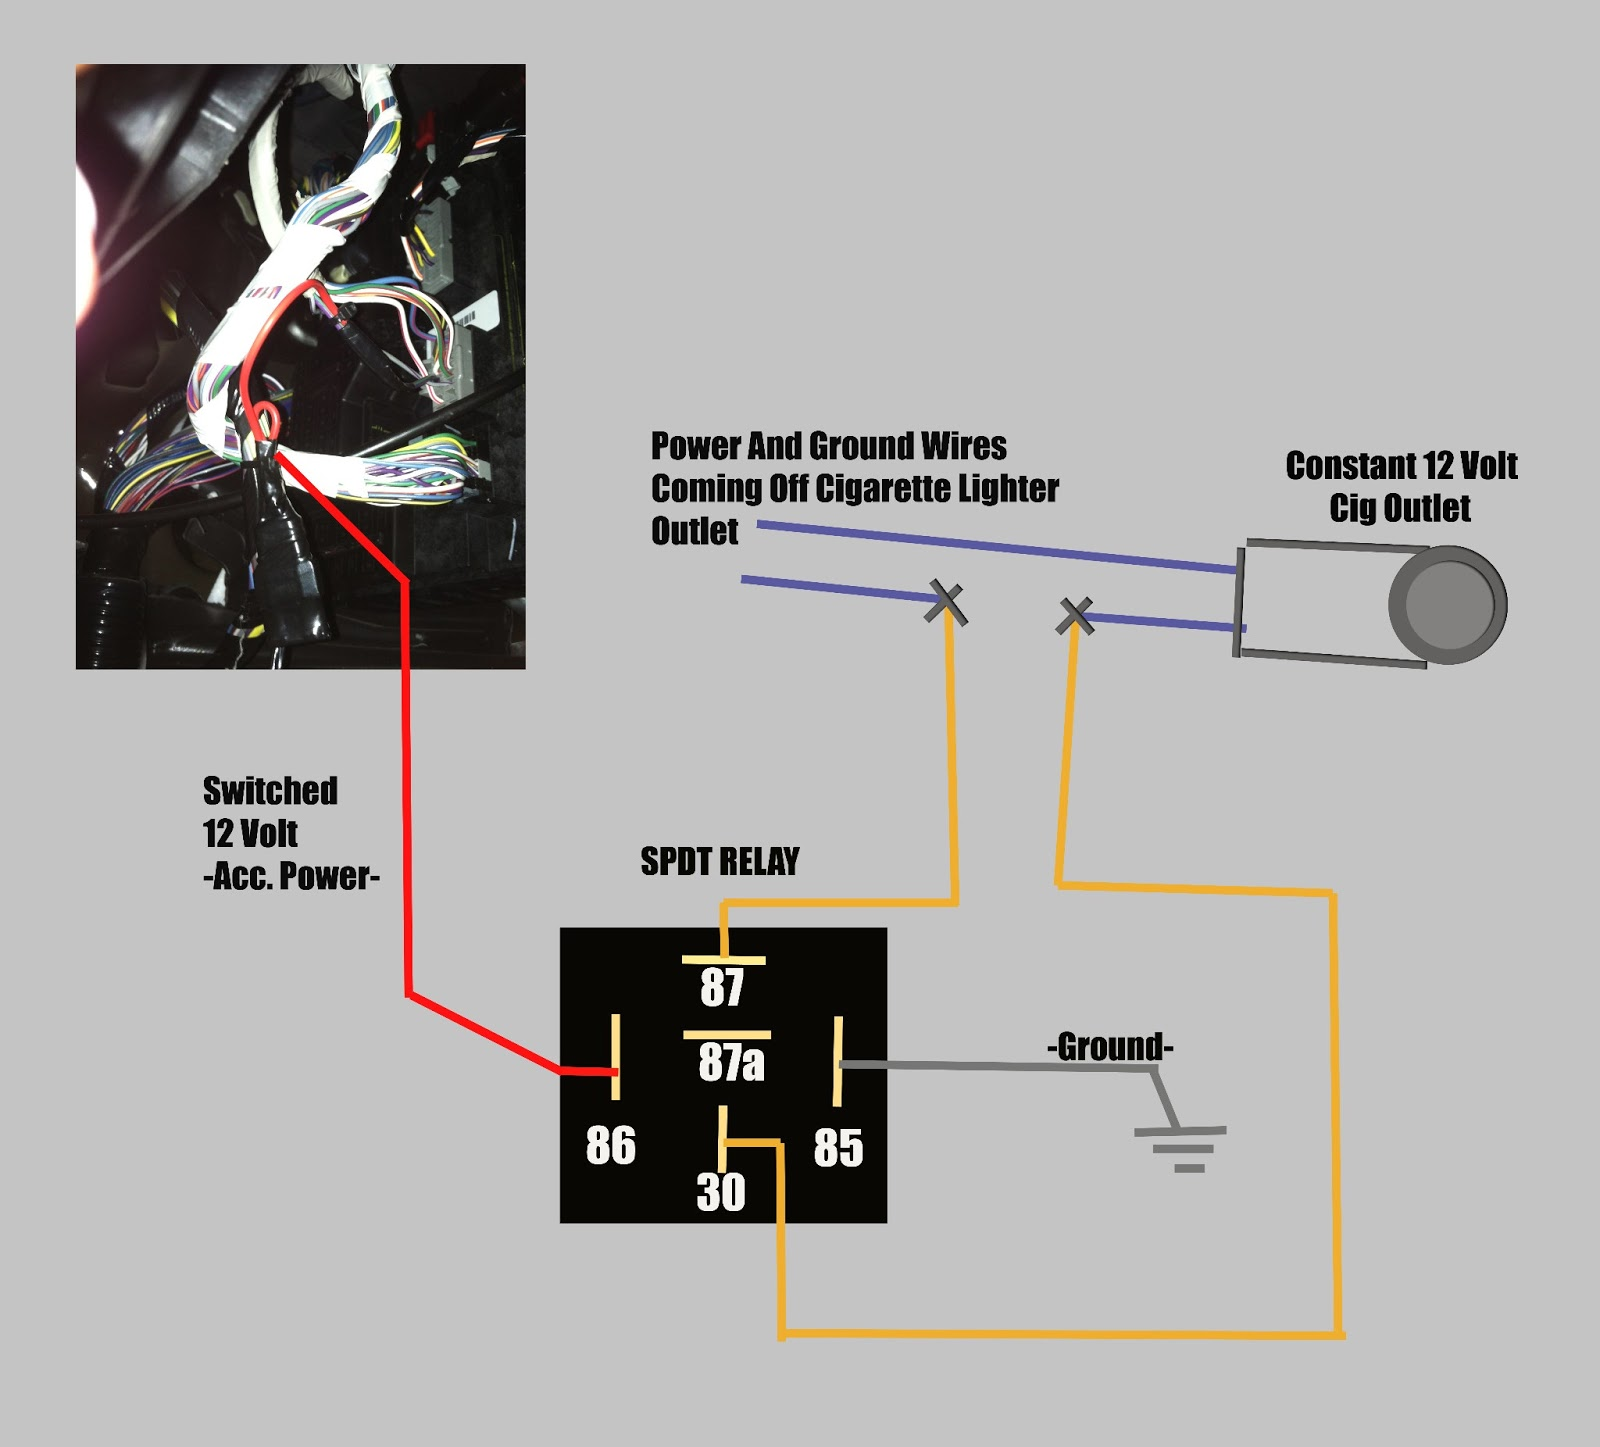 Python Viper Car Alarm Wiring Diagrams | Best Wiring Liry on viper exhaust, viper interior, viper seats, viper antenna, viper blue, viper electrical, viper chassis, viper tools, viper tires,